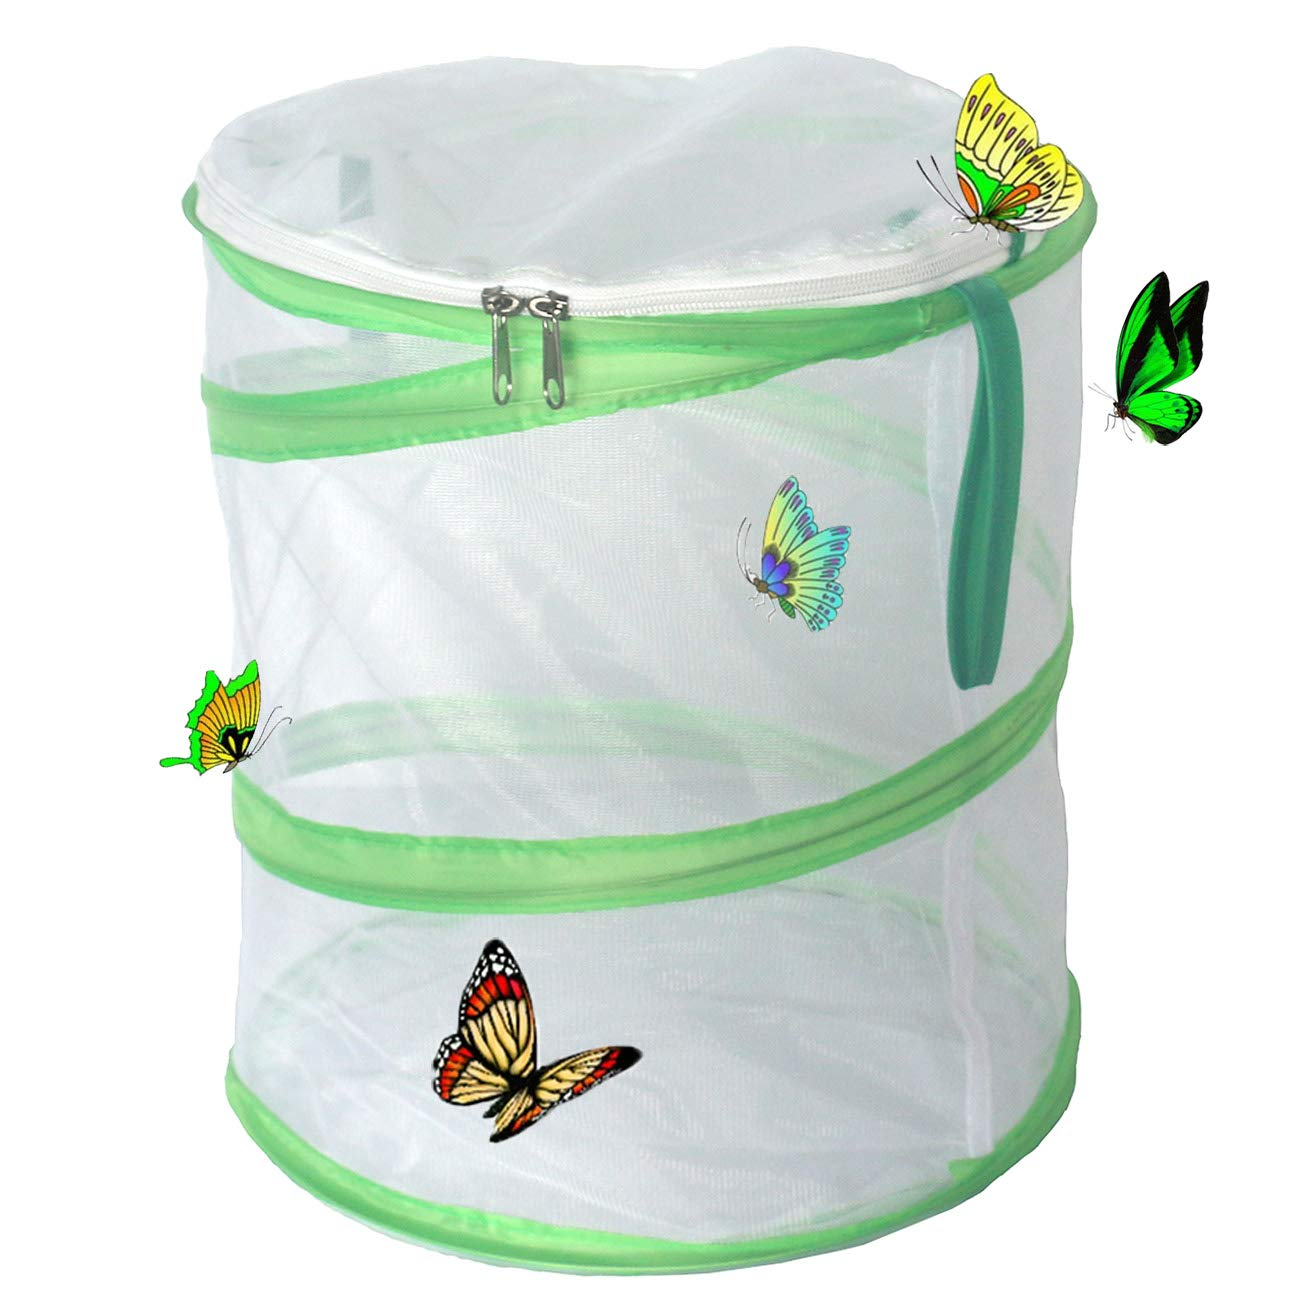 Trasfit Pop-up Insect and Butterfly Habitat Cage Terrarium - 12 x 14 Inches Tall